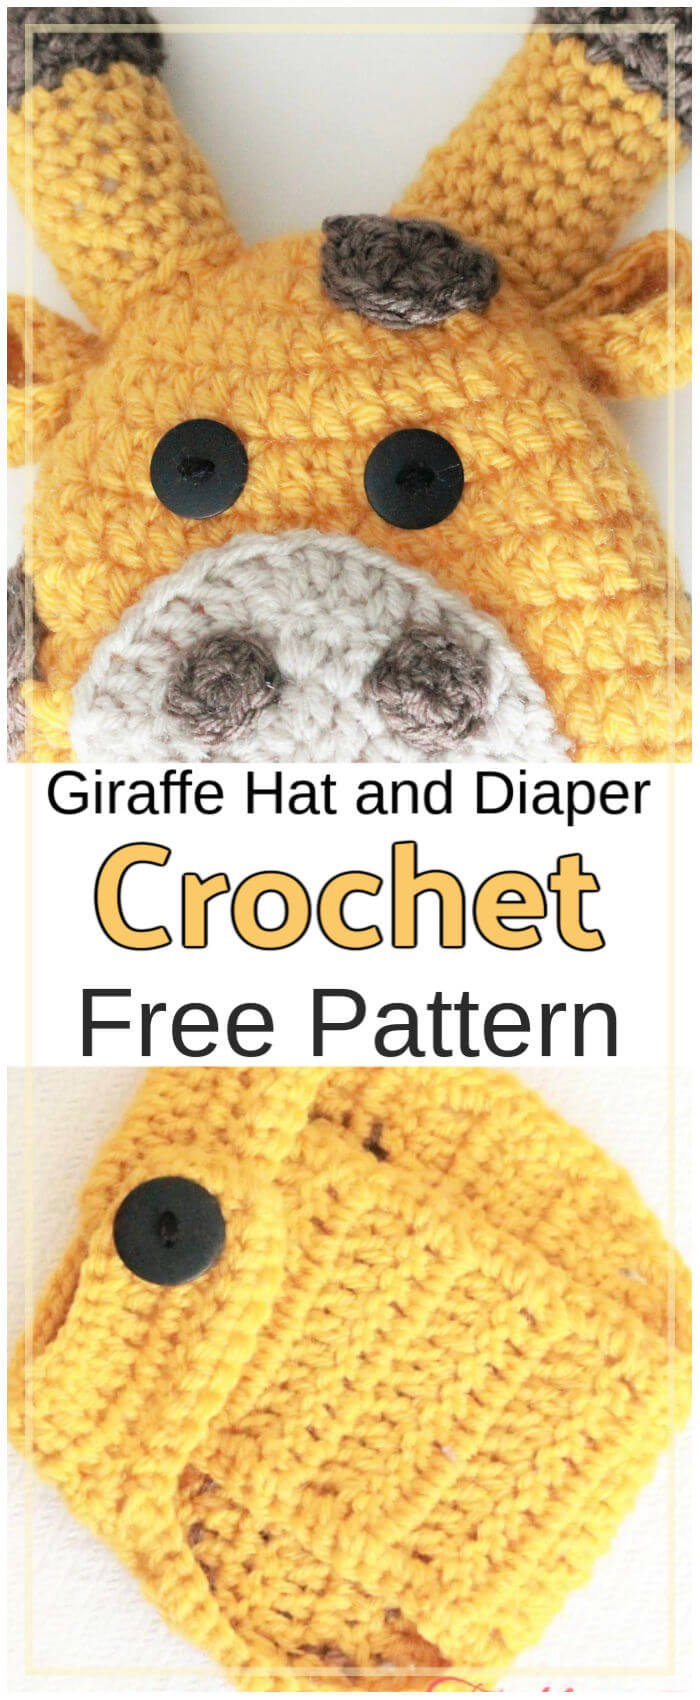 How to Crochet Giraffe Hat and Diaper Cover